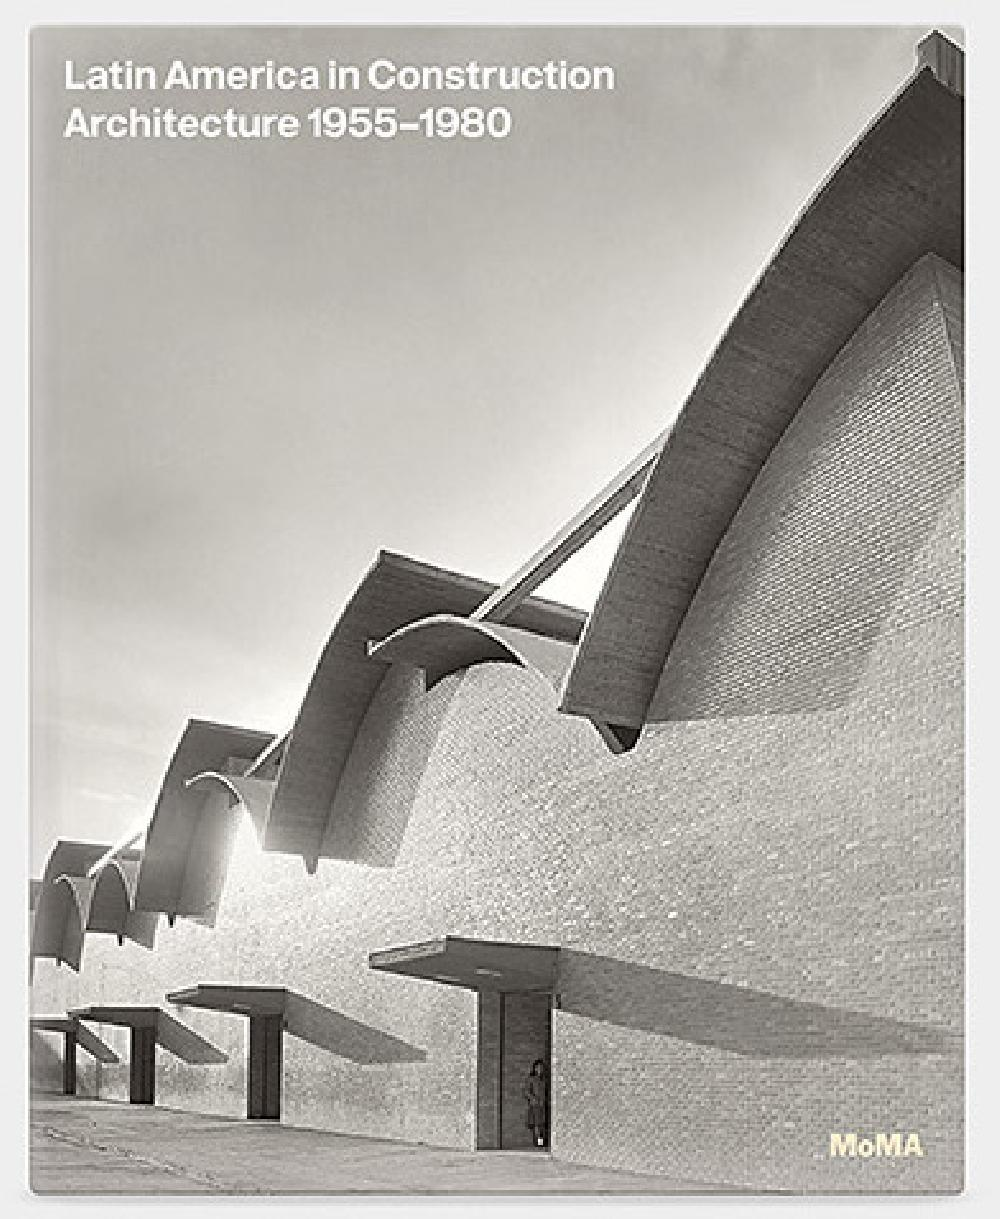 Latin America in Construction. Architecture 1955-1980